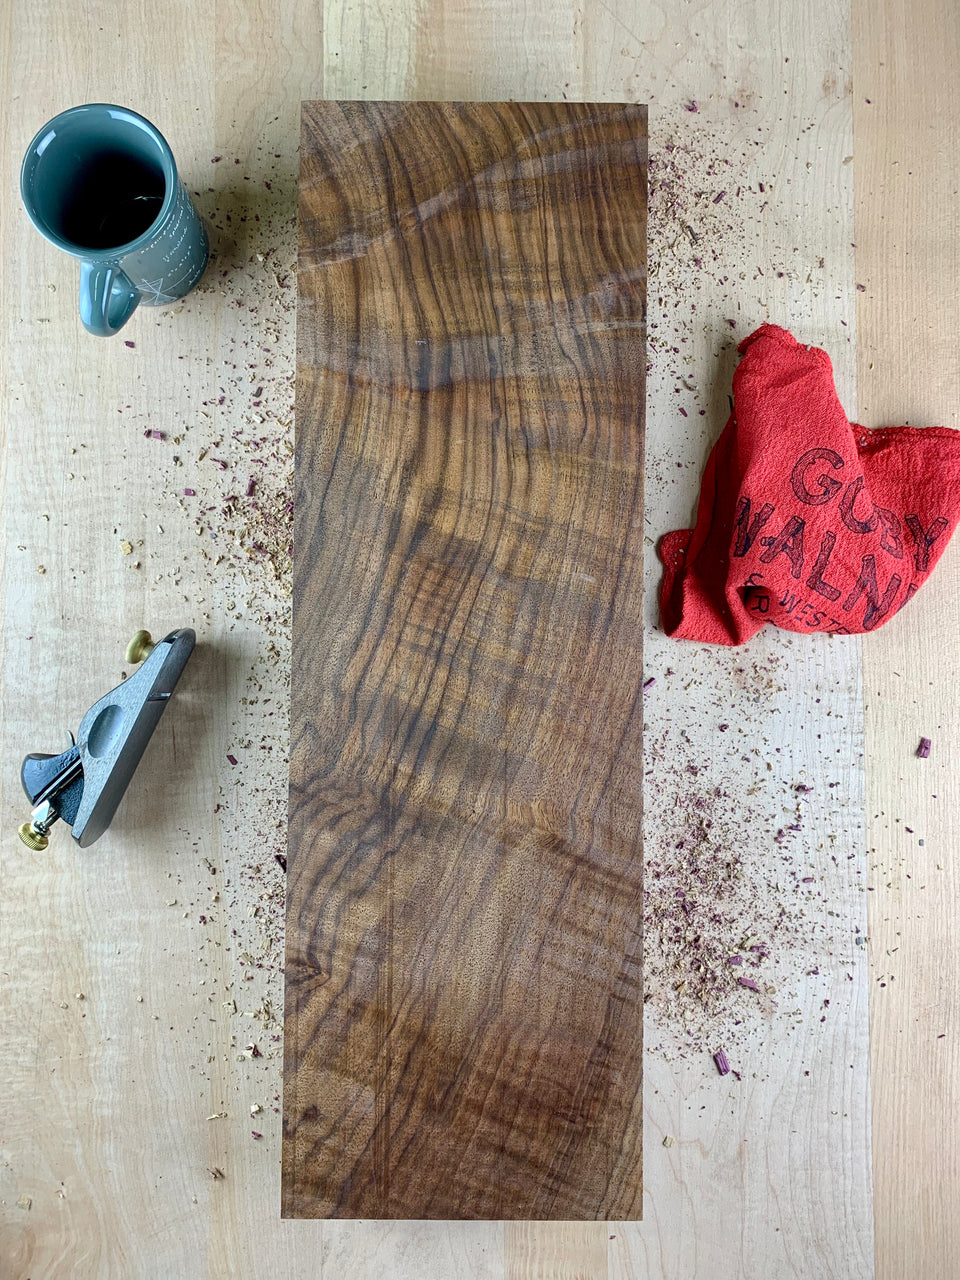 Oregon Black Walnut Board B3749